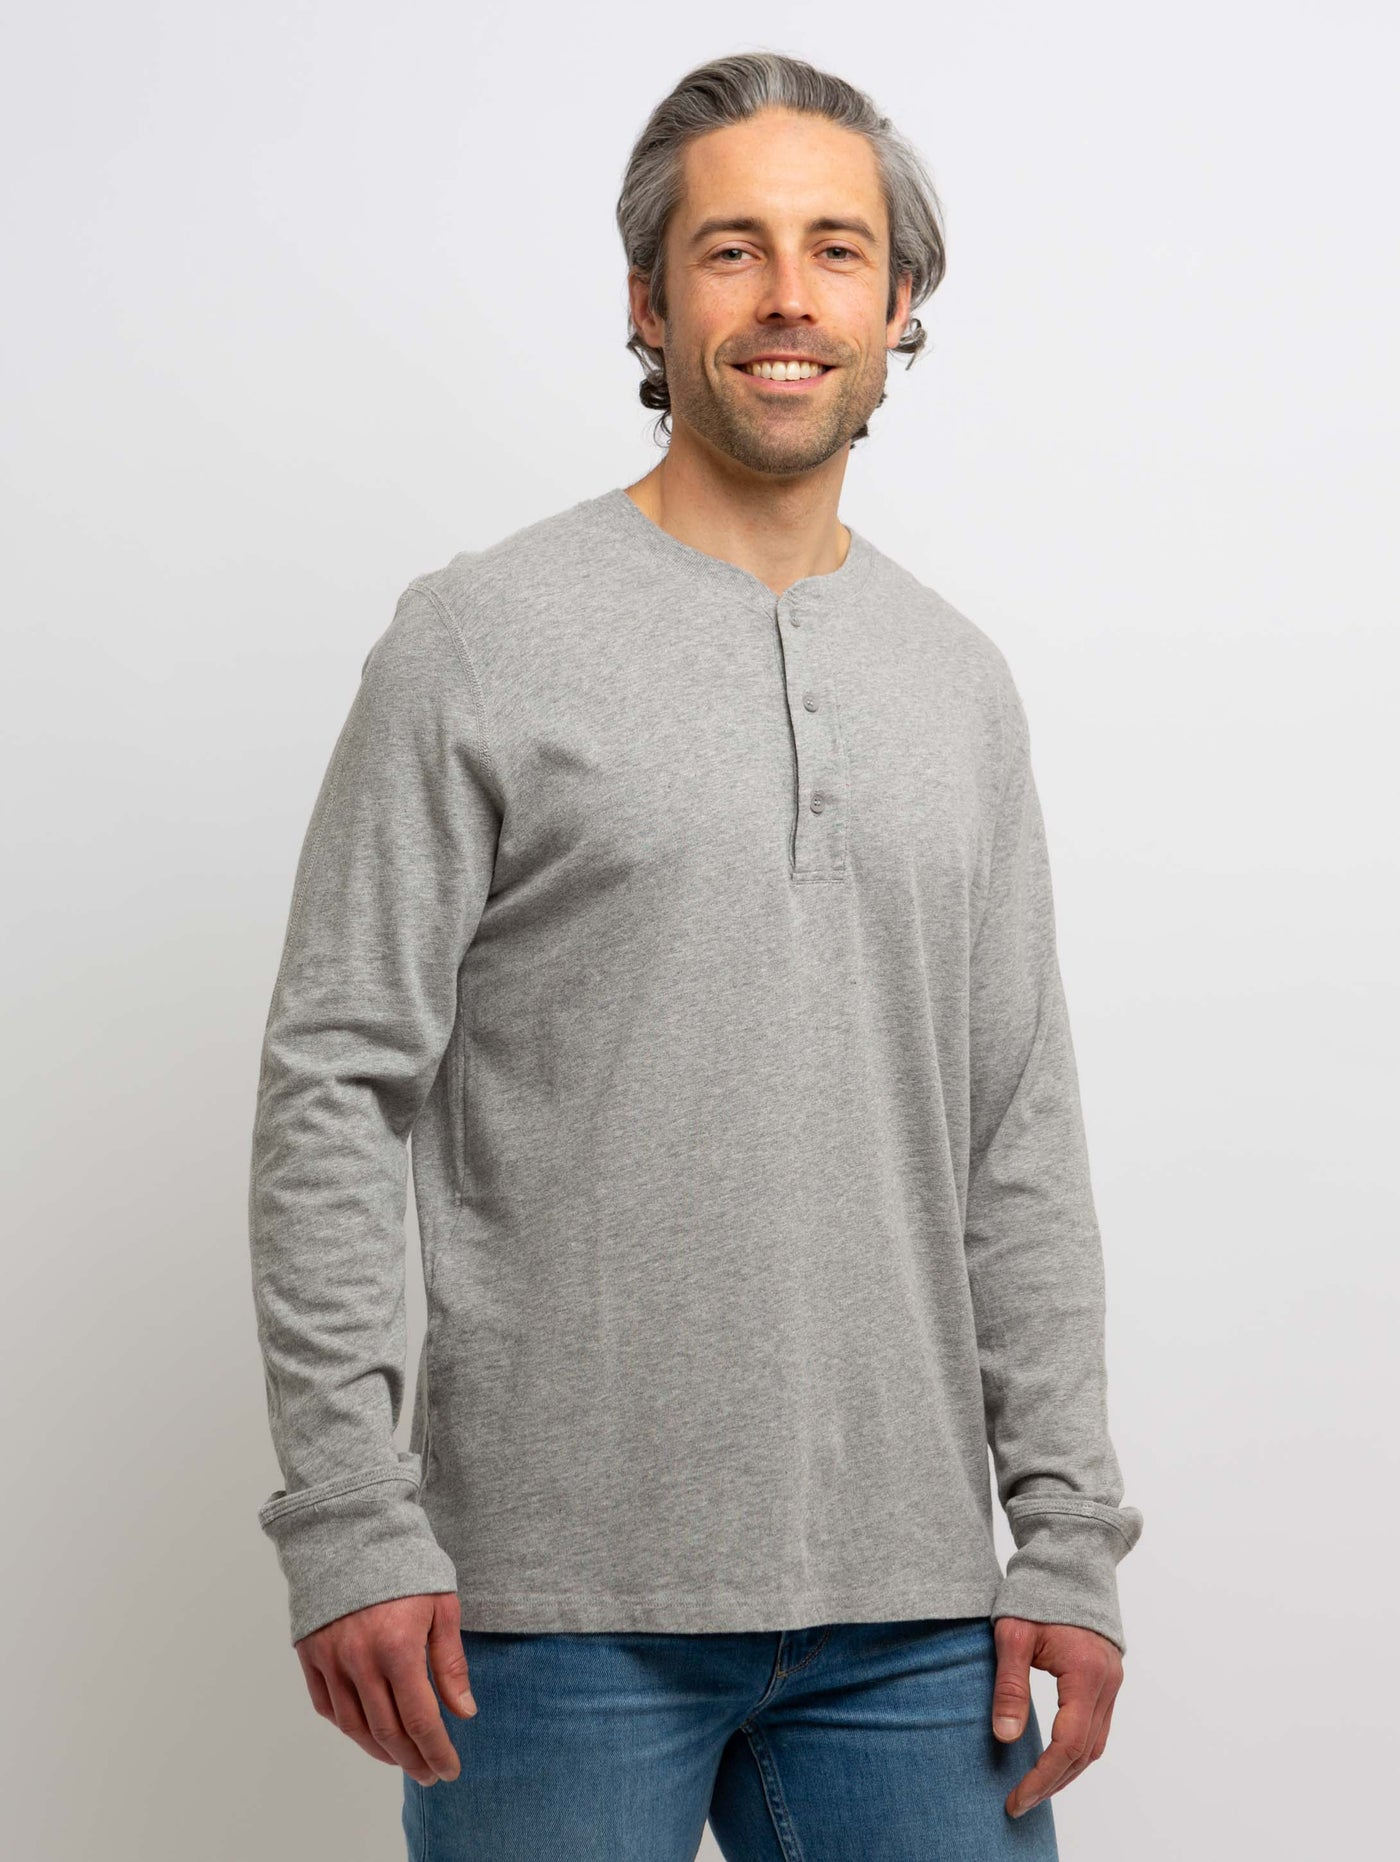 Adrian Jersey Henley Long Sleeve Top - Heather Grey-Velvet-Over the Rainbow